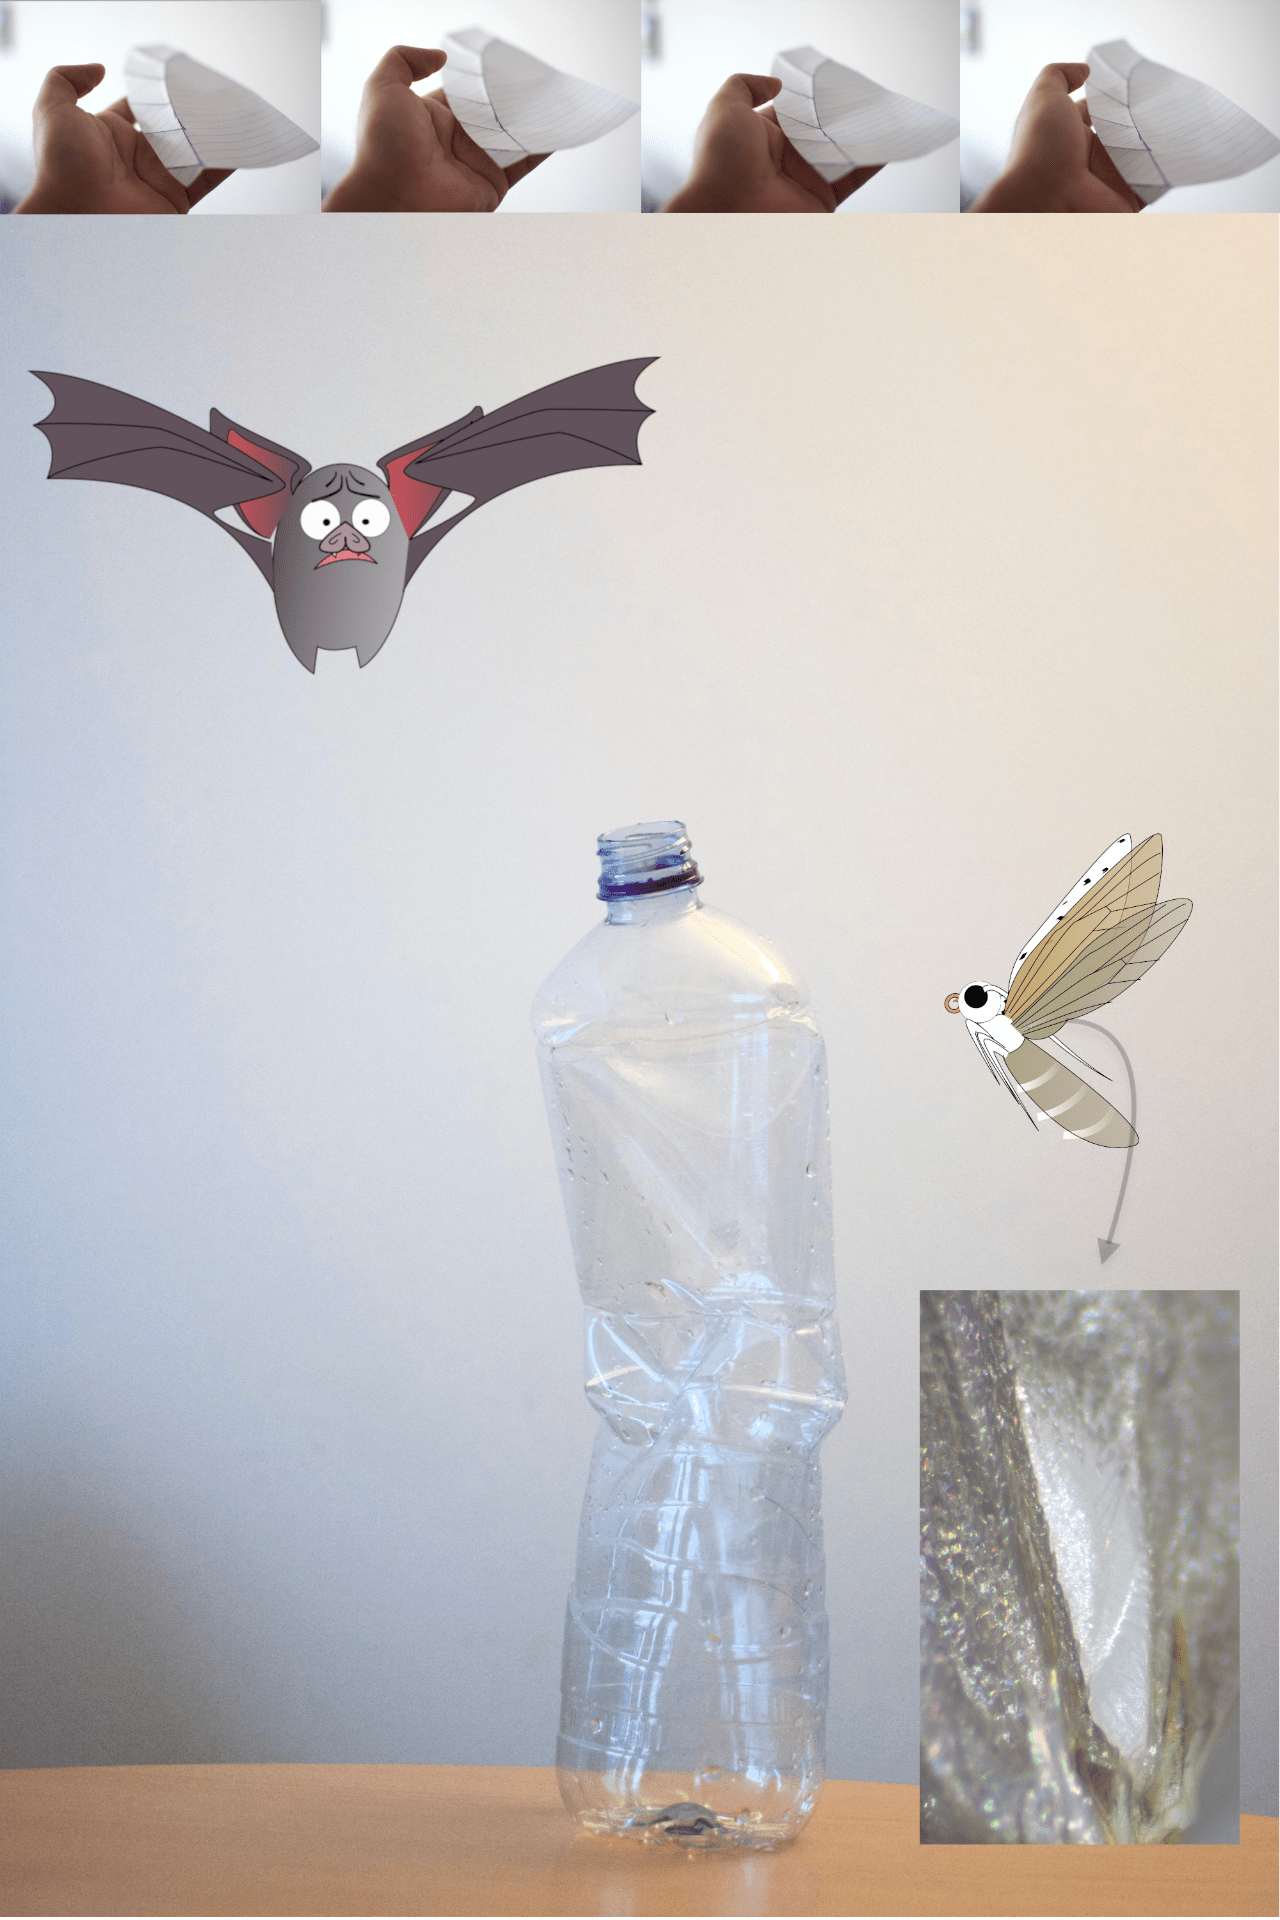 Four images of a hand holding a paper 'wing'. Beneath this set of images is a larger image: a cartoon bat hovering over a crushed plastic bottle. To the right of the bottle is a cartoon mosquito. An arrow next to the mosquito points down to a rectangular image of a reflective surface.